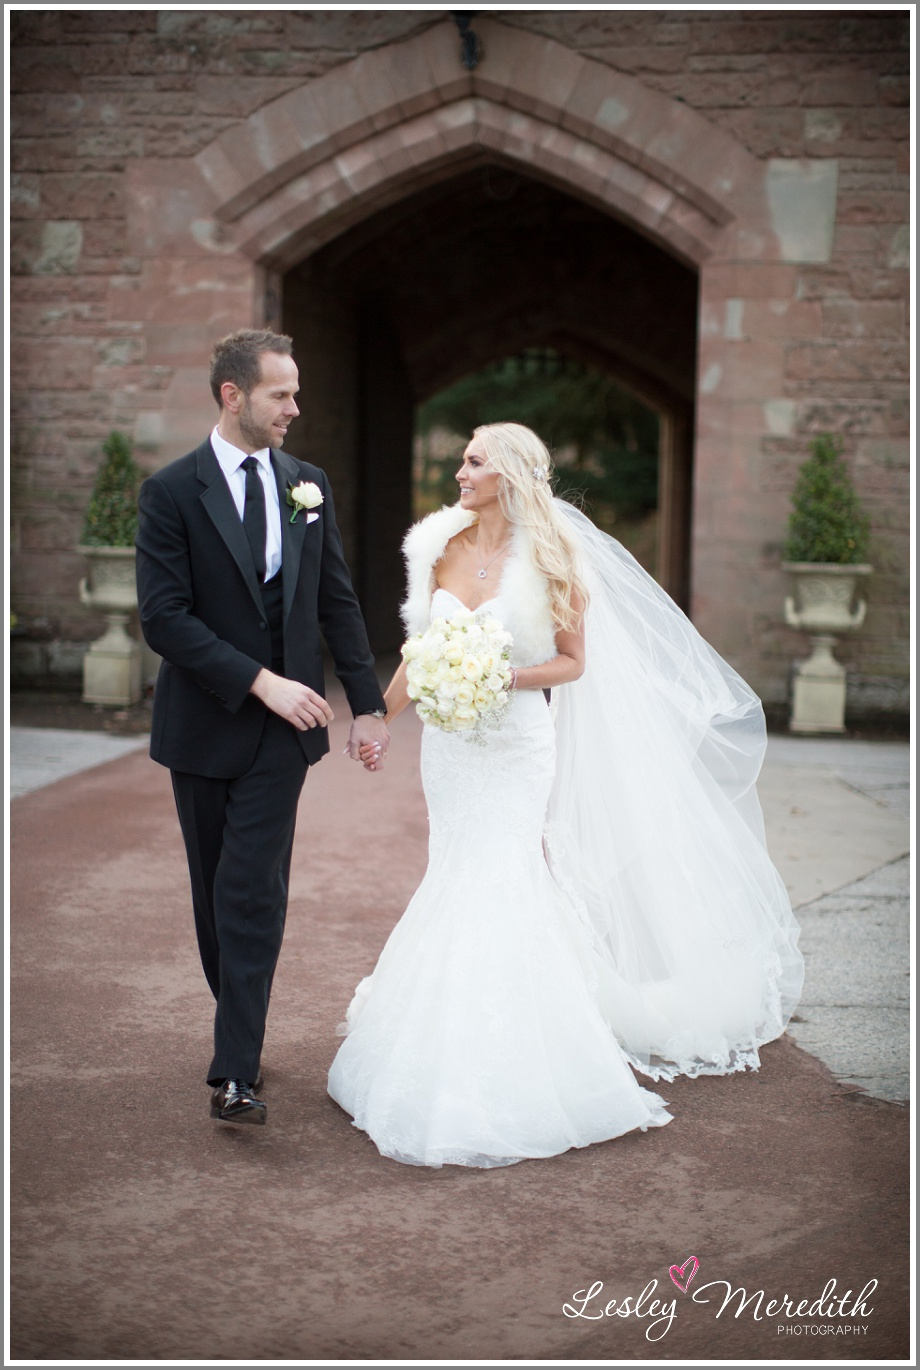 Julie and Marcus take a walk at Peckforton Castle